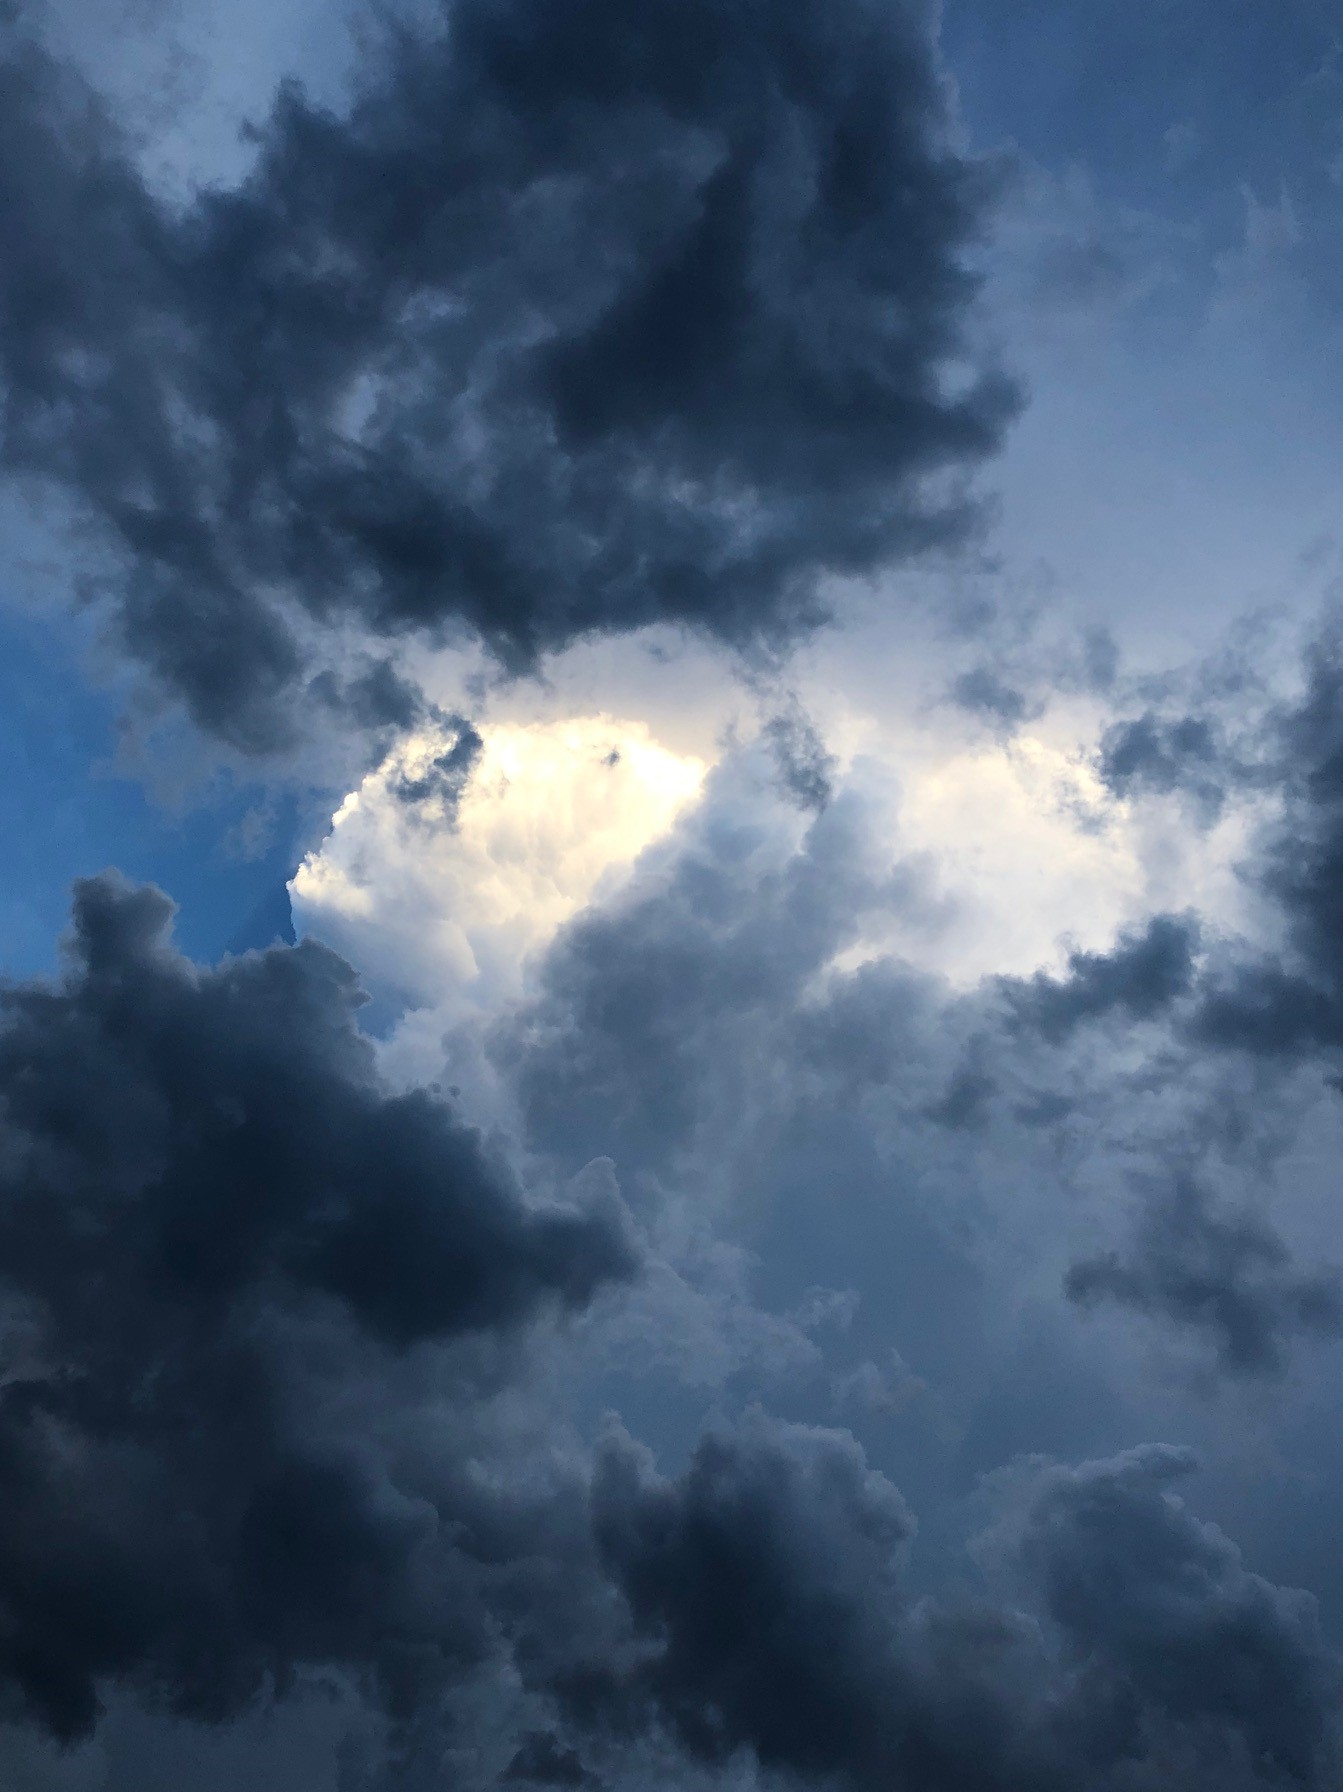 """Dark clouds become heaven's flowers when kissed by light."" ― Rabindranath Tagore"